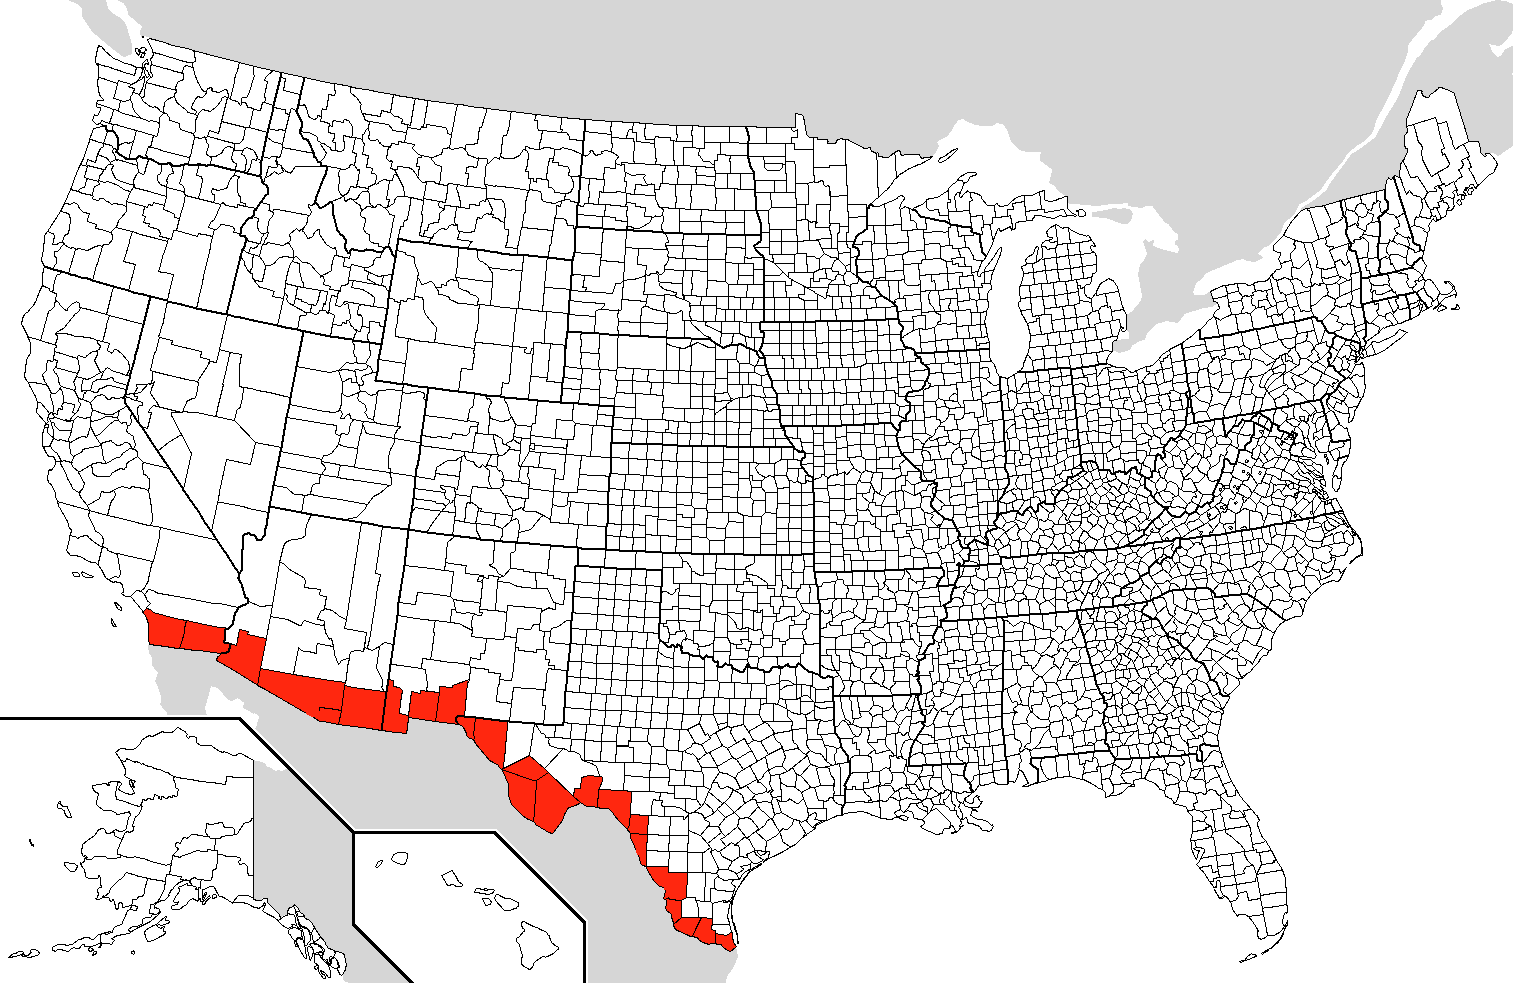 MexicoUnited States Border Wikiwand - Map of us border fence